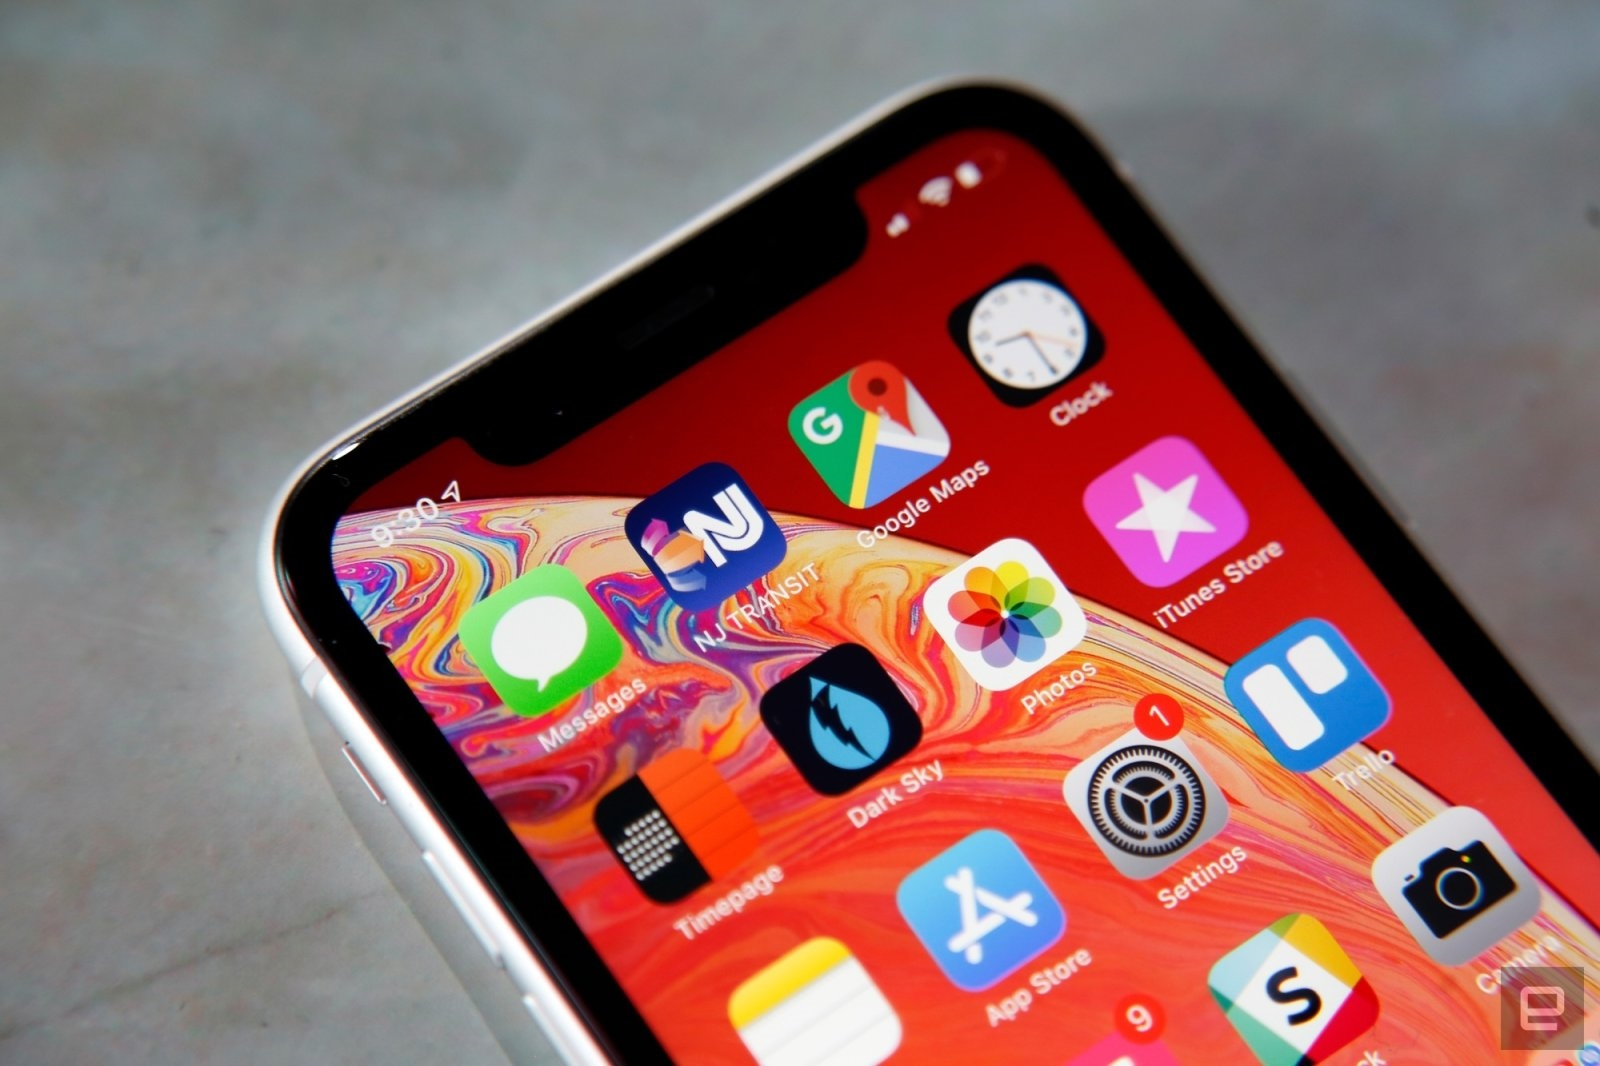 Over a dozen iPhone apps talked to a known malware server | DeviceDaily.com